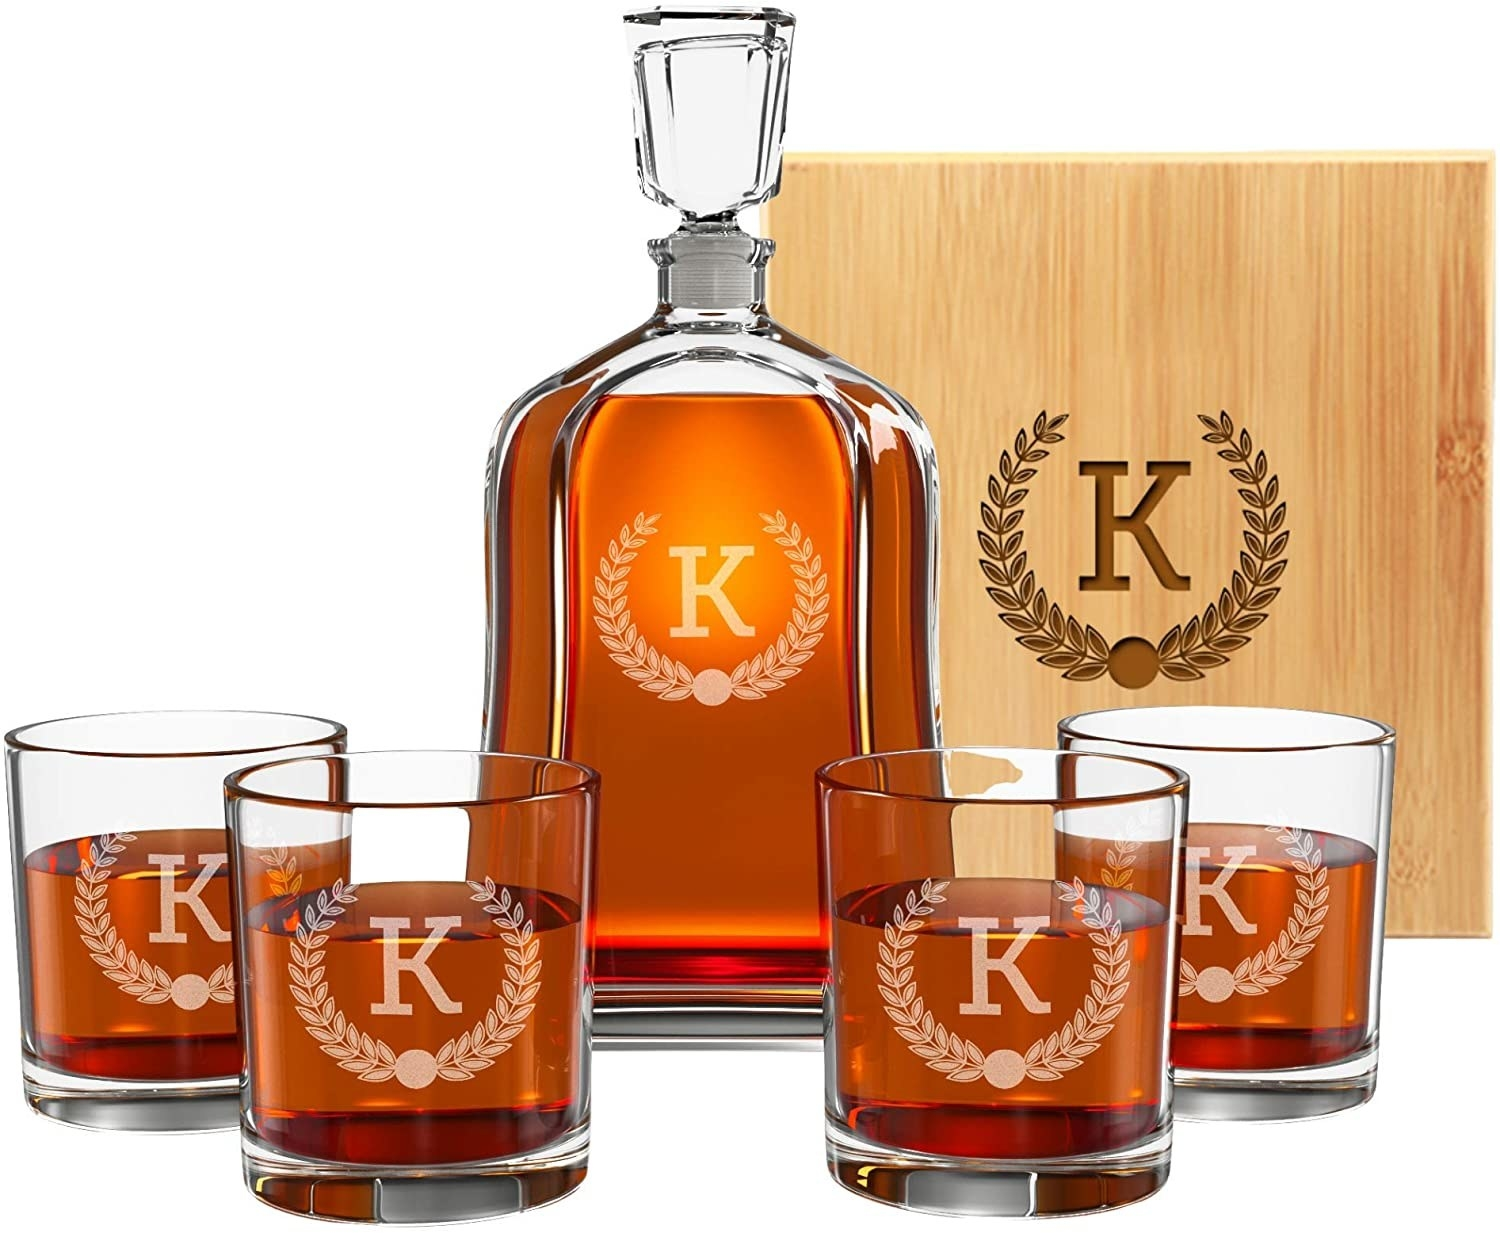 Monogrammed whiskey decanter set, four monogrammed whiskey glasses and a monogrammed wood box